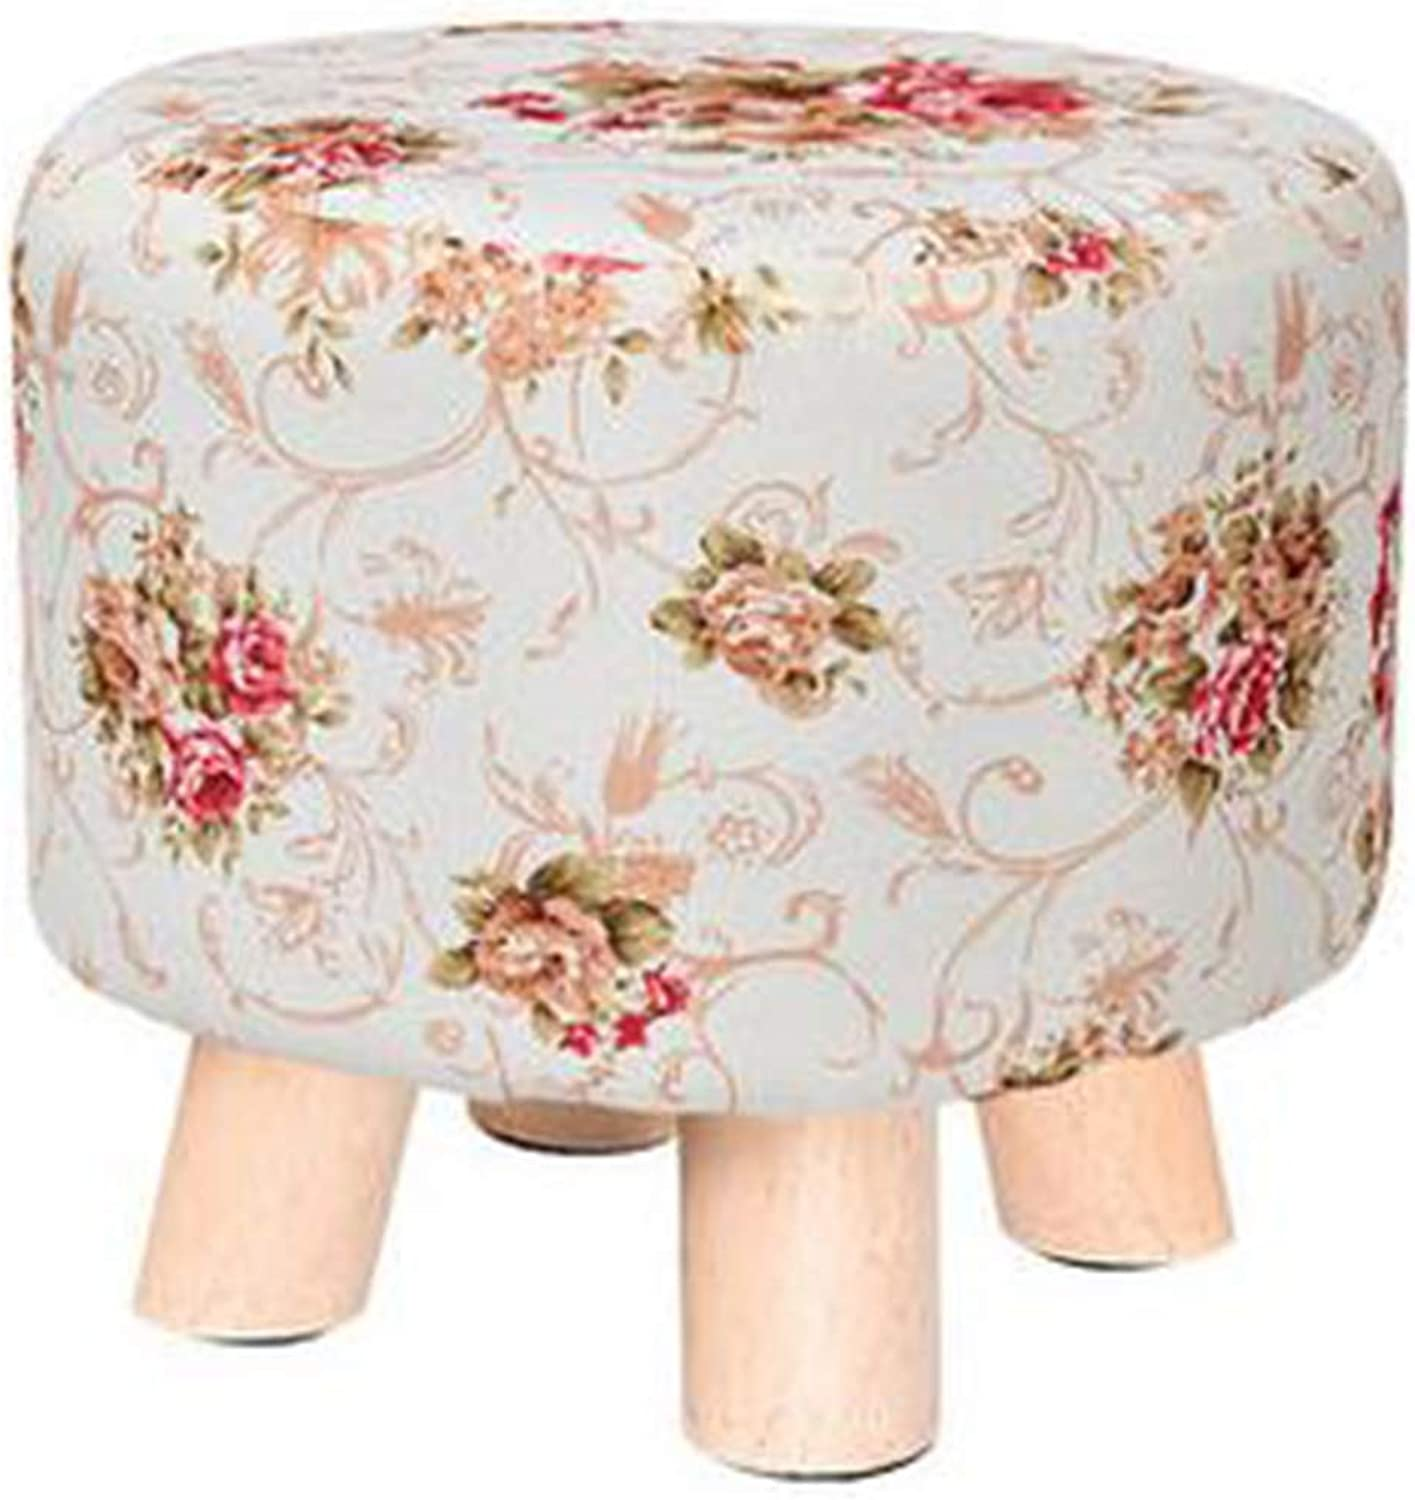 Creative Round Wooden Footstool Linen Foot Rest Stool Adult Kids Applicable, Flower